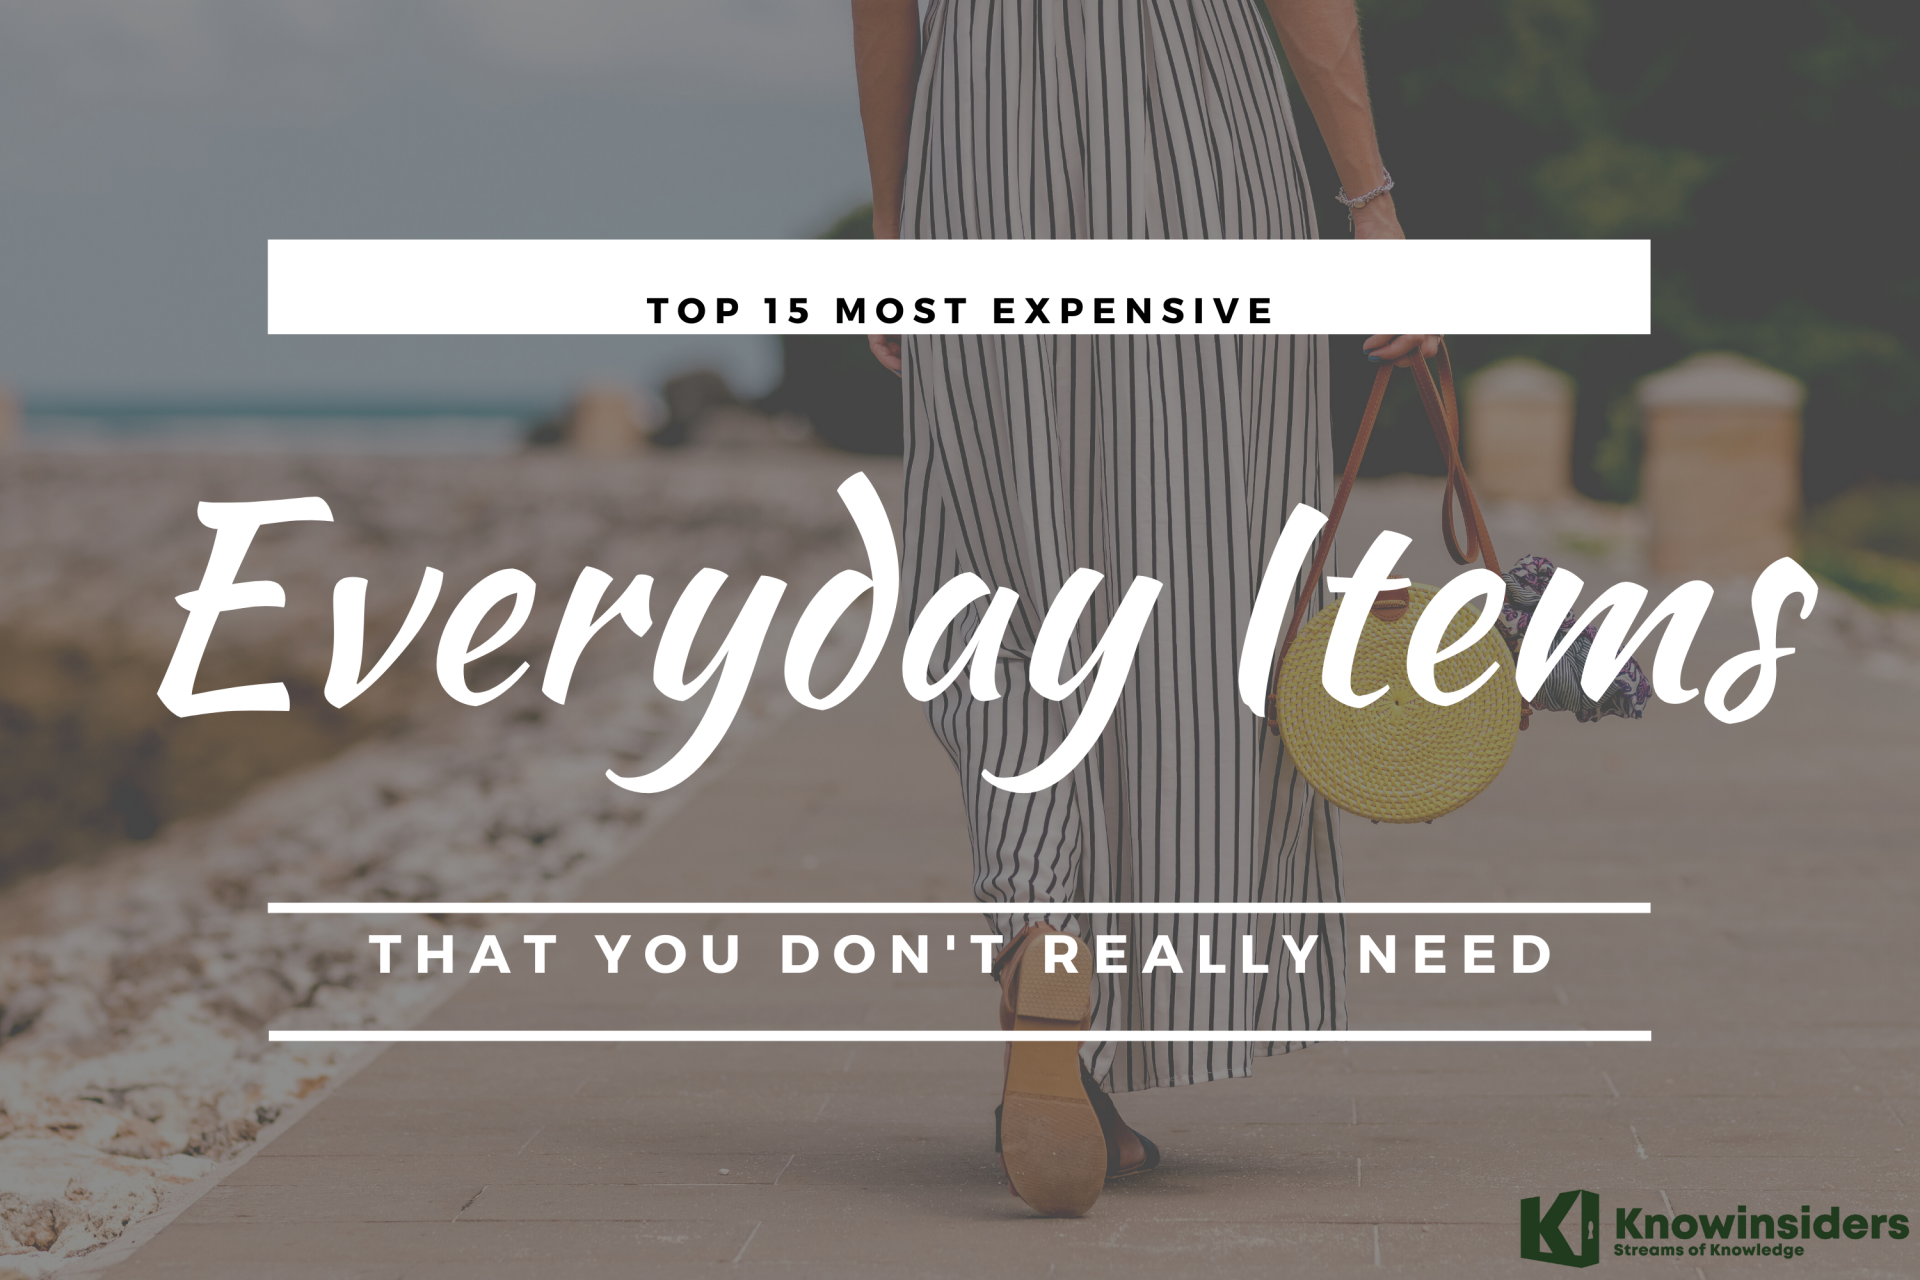 Top 15 Most Expensive Everyday Items That You Don